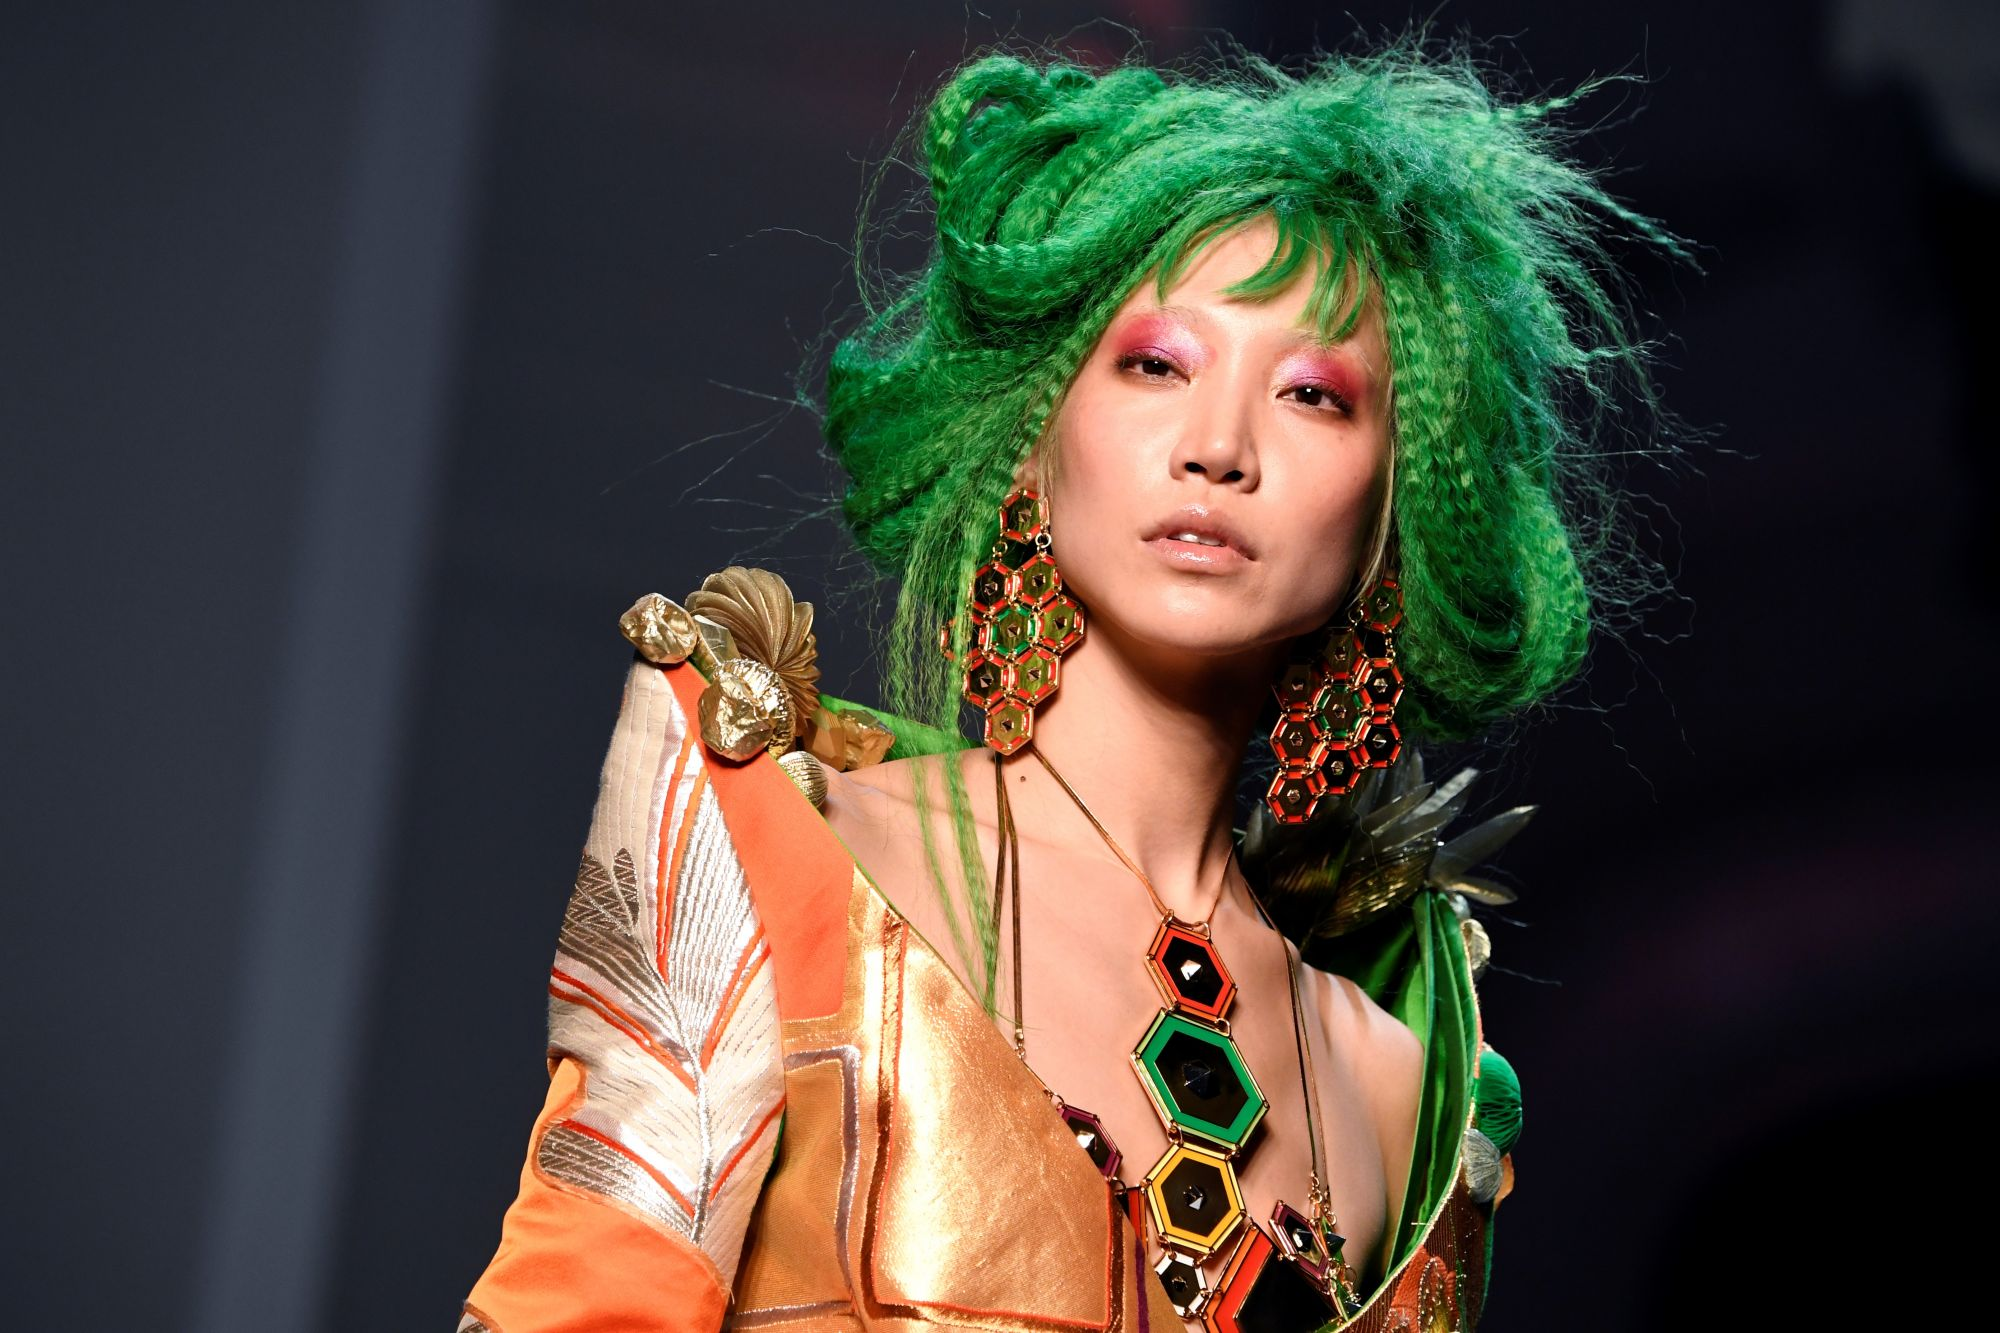 Beauty Focus: Colourful Hair For Spring